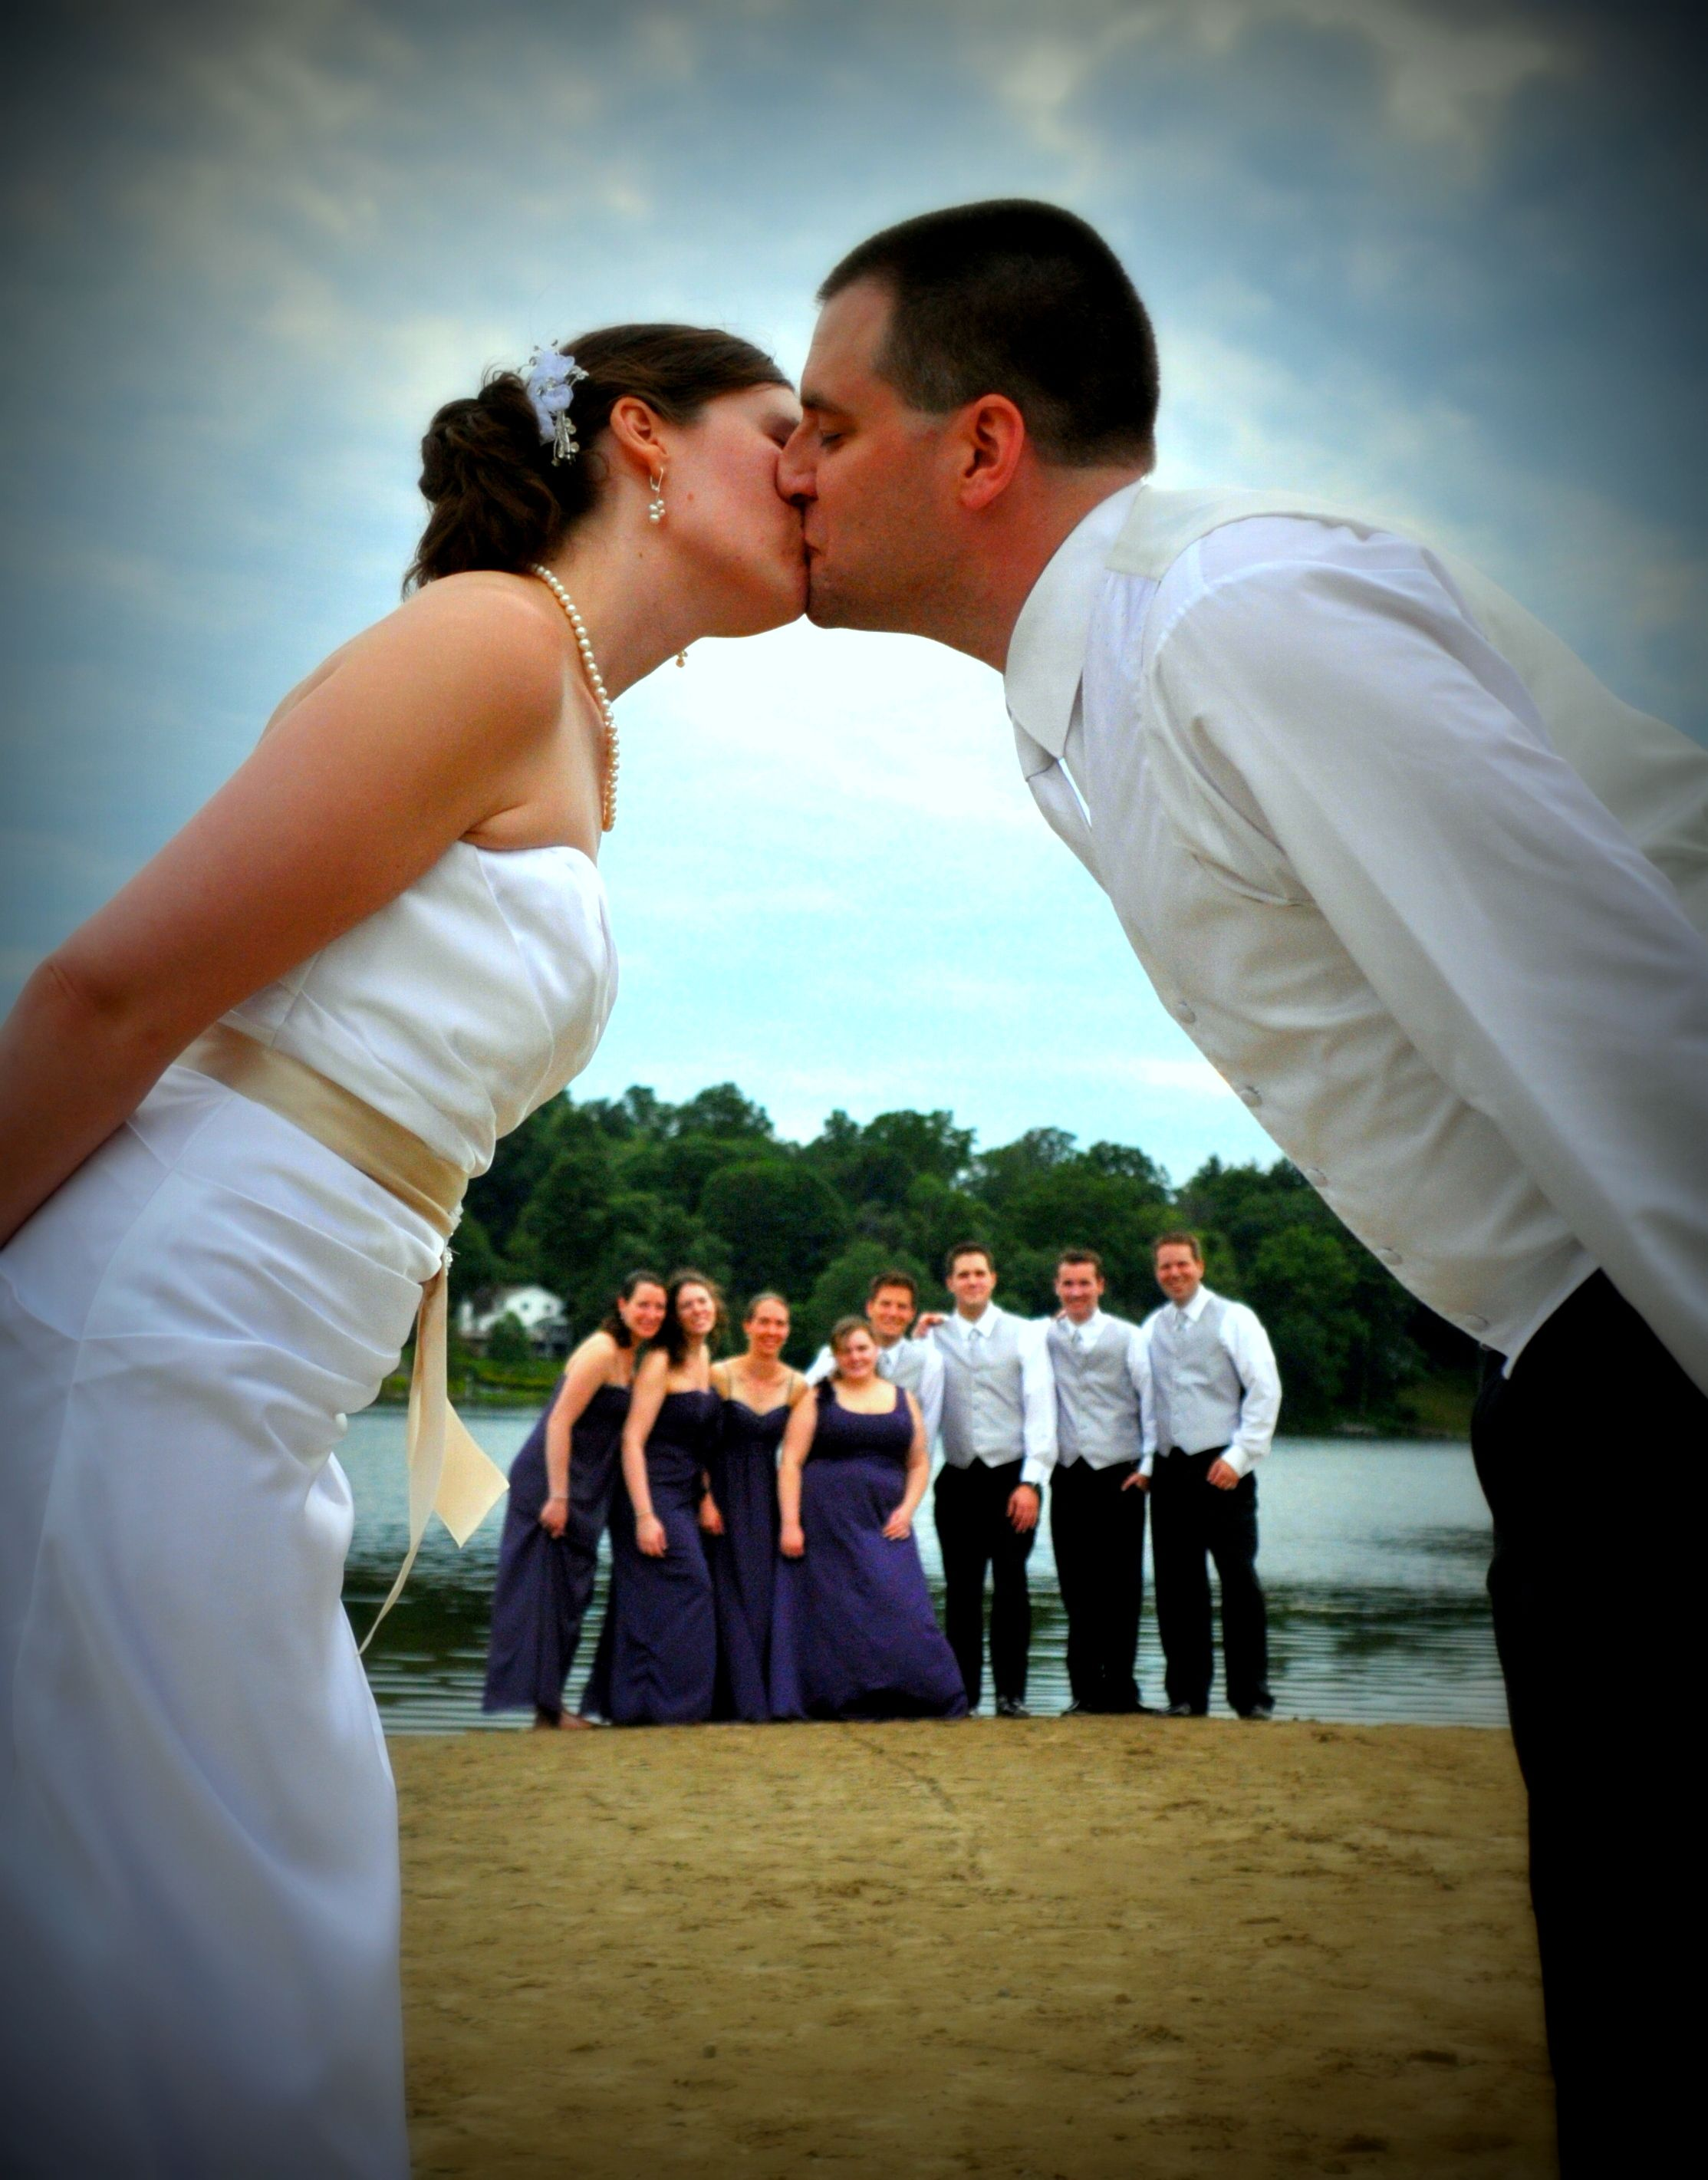 Wedding photography ideas for posing  Unique Wedding Pose, Wedding Photo Ideas | ACF Photography ...